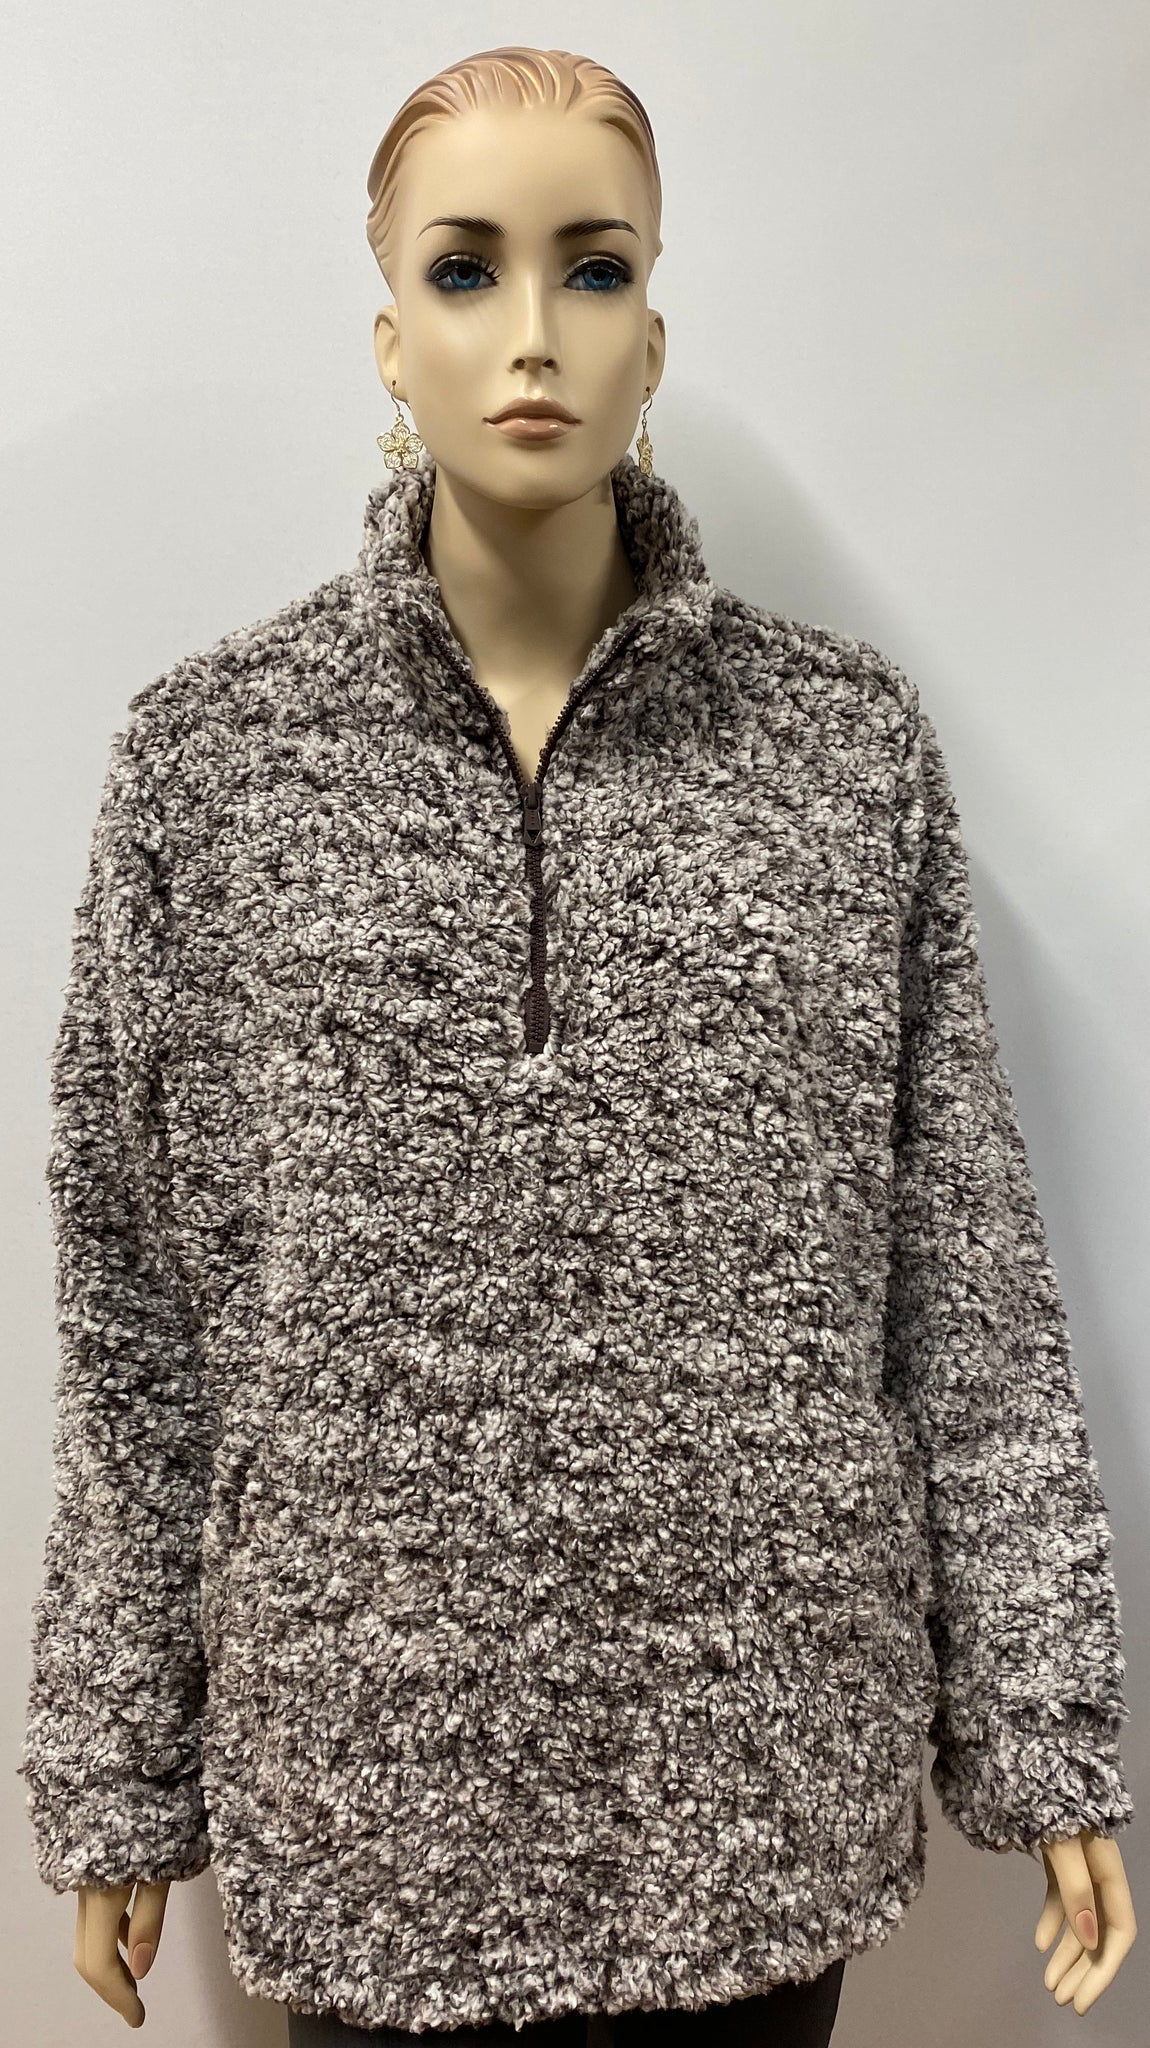 Frosty Tipped  Brown Sherpa Pullover Sweater w/ Pockets